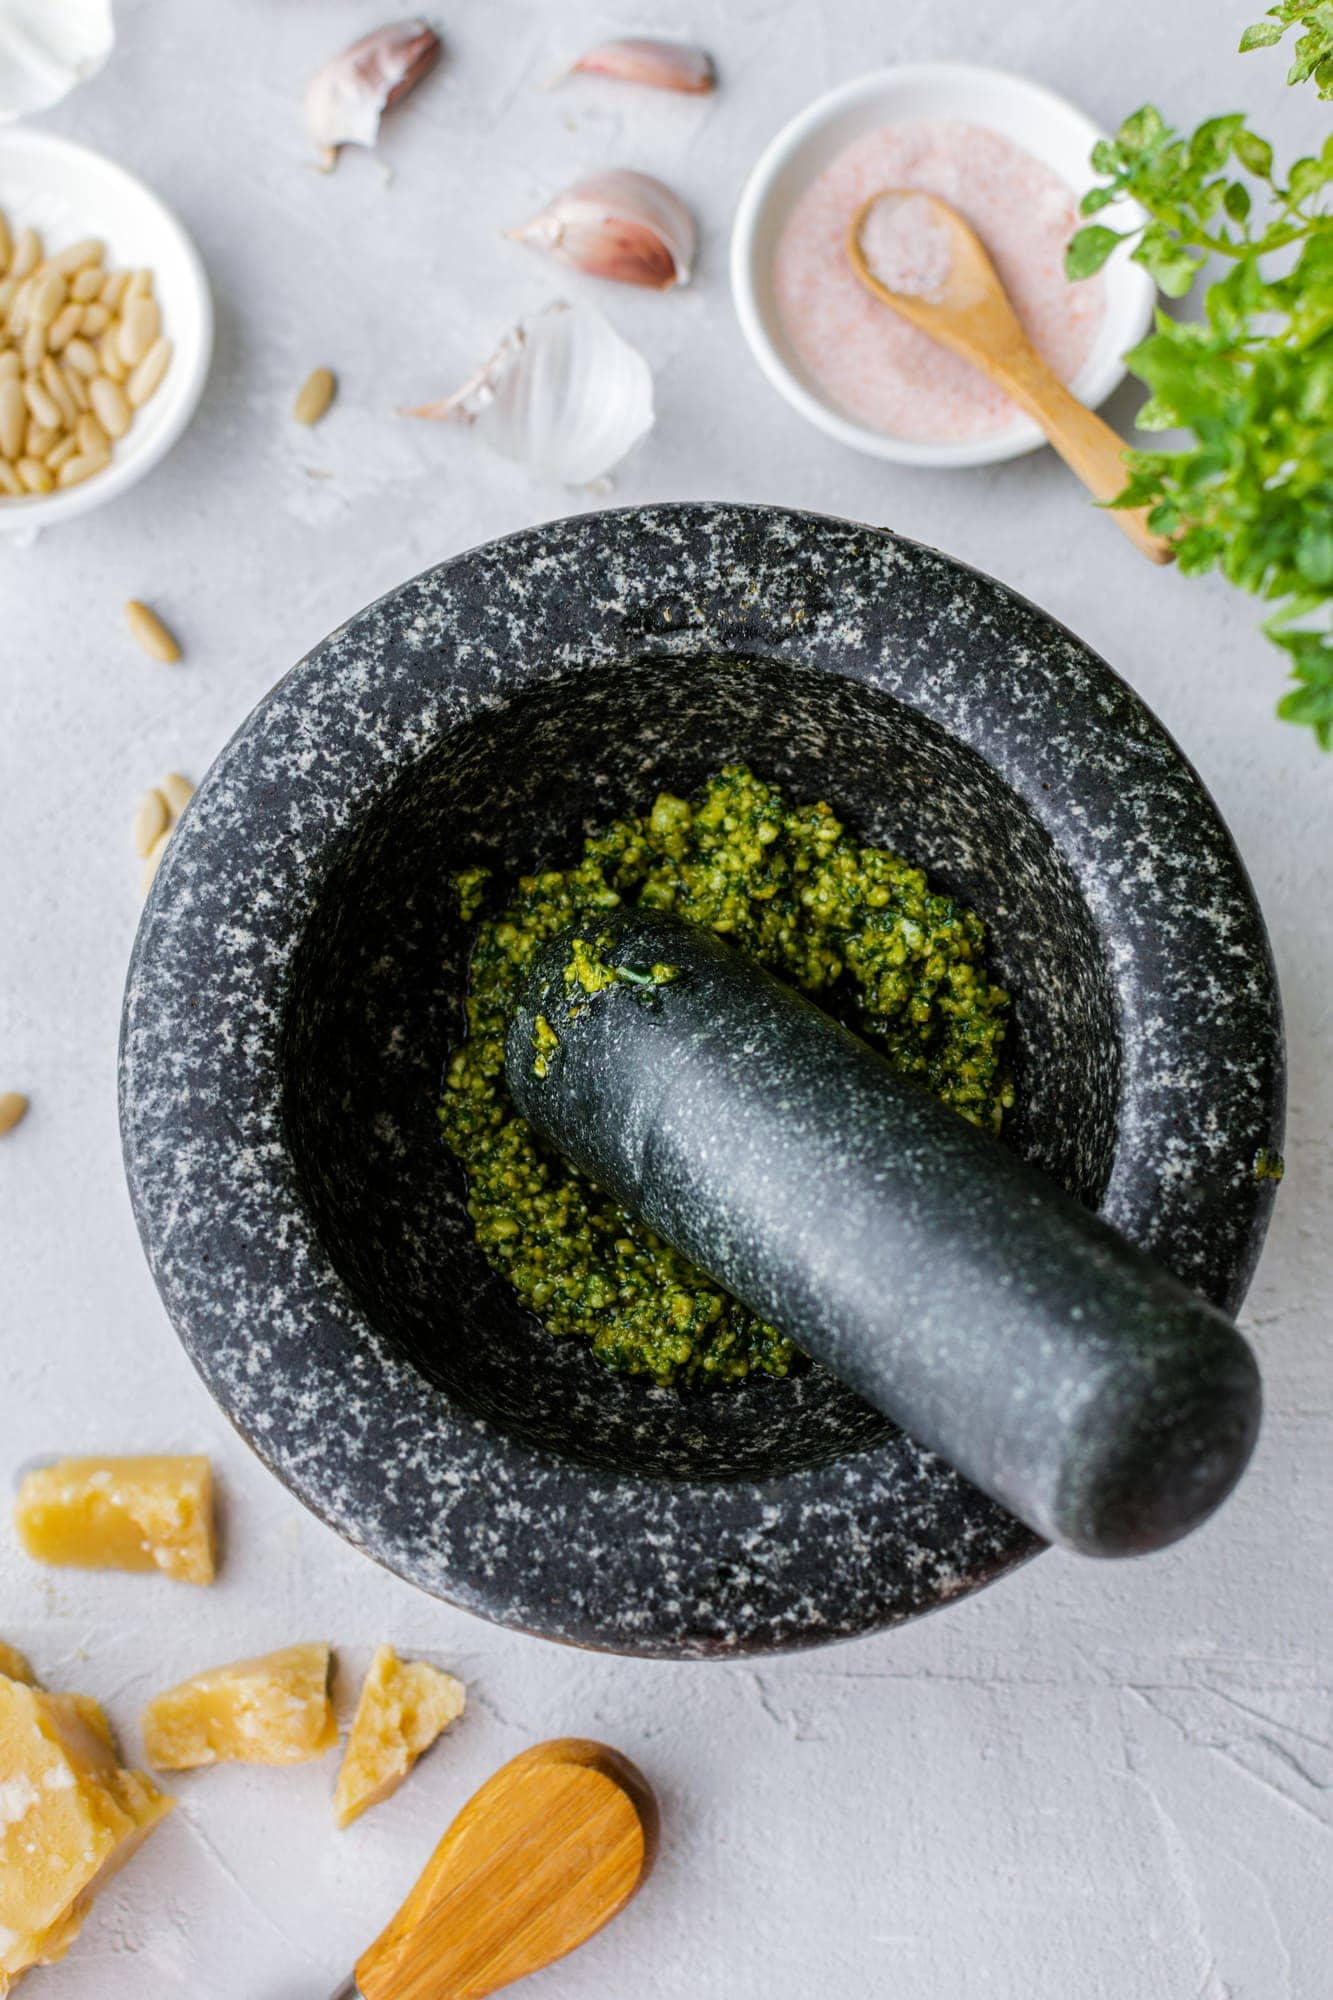 Process of preparation traditional italian pesto genovese sauce with mortar and pestle